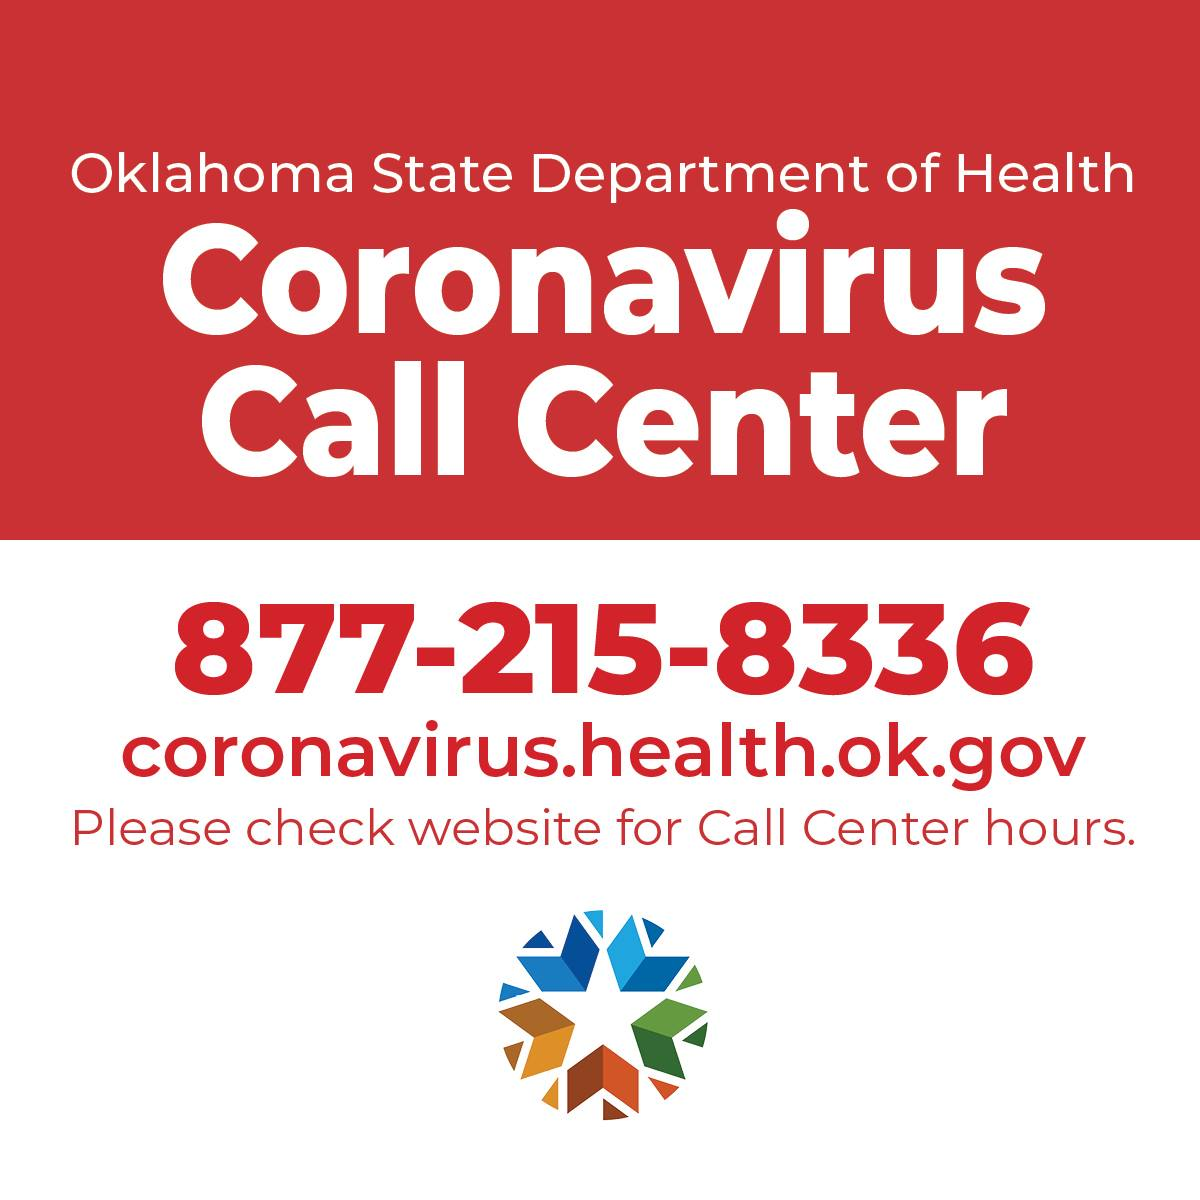 Oklahoma State Department of Health Coronavirus Call Center. 877-215-8336 coronavirus.health.ok.gov. Please check website for Call Center hours. State of Oklahoma logo.